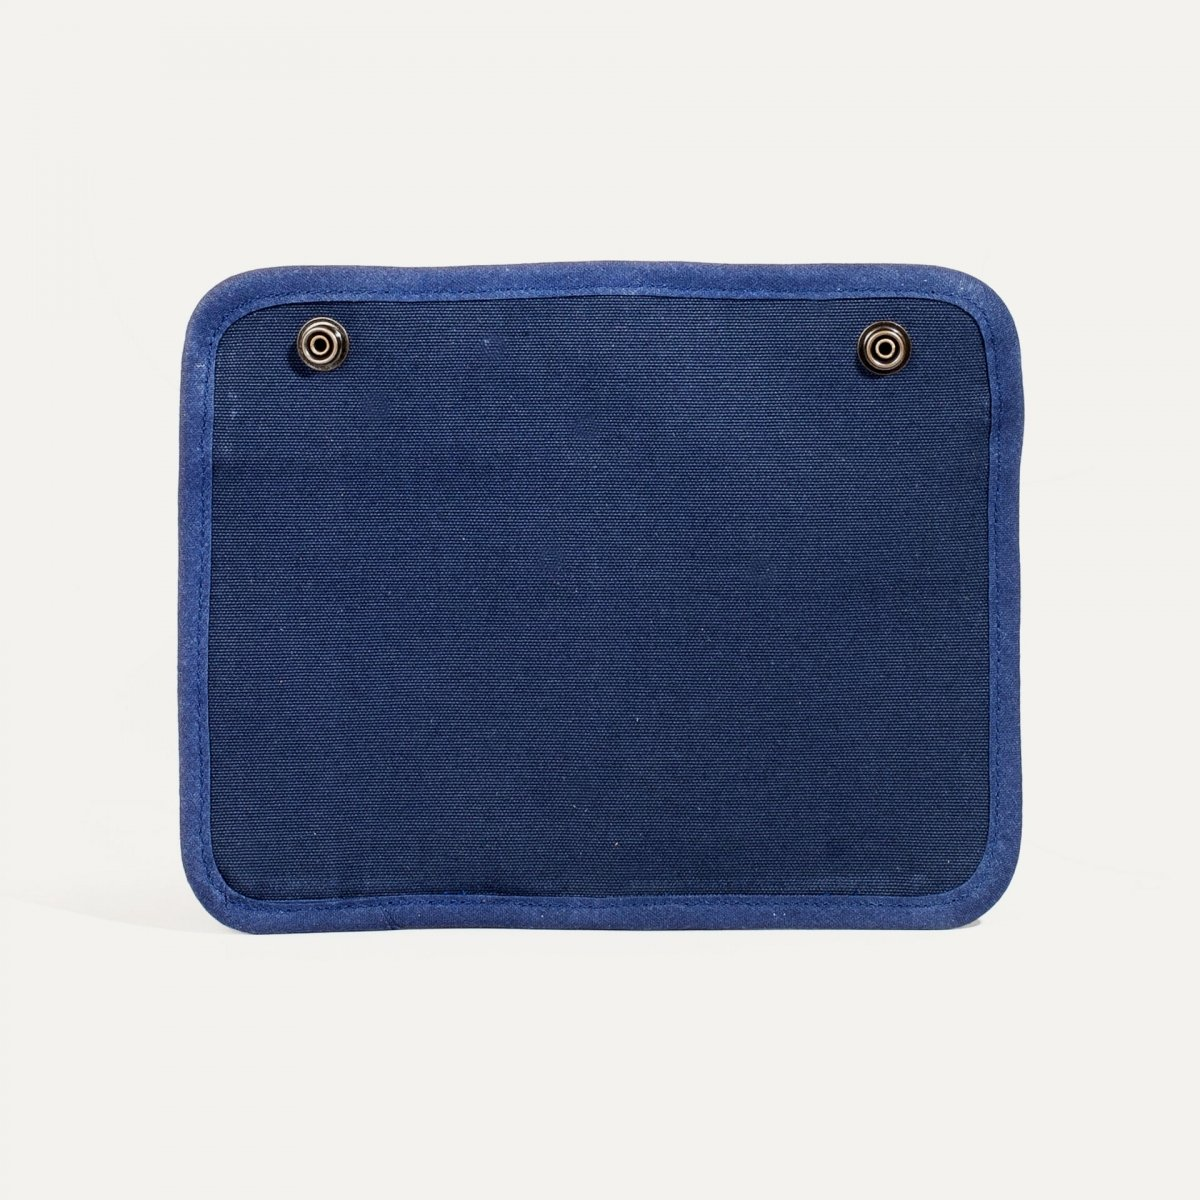 Pouch - Blue (image n°2)